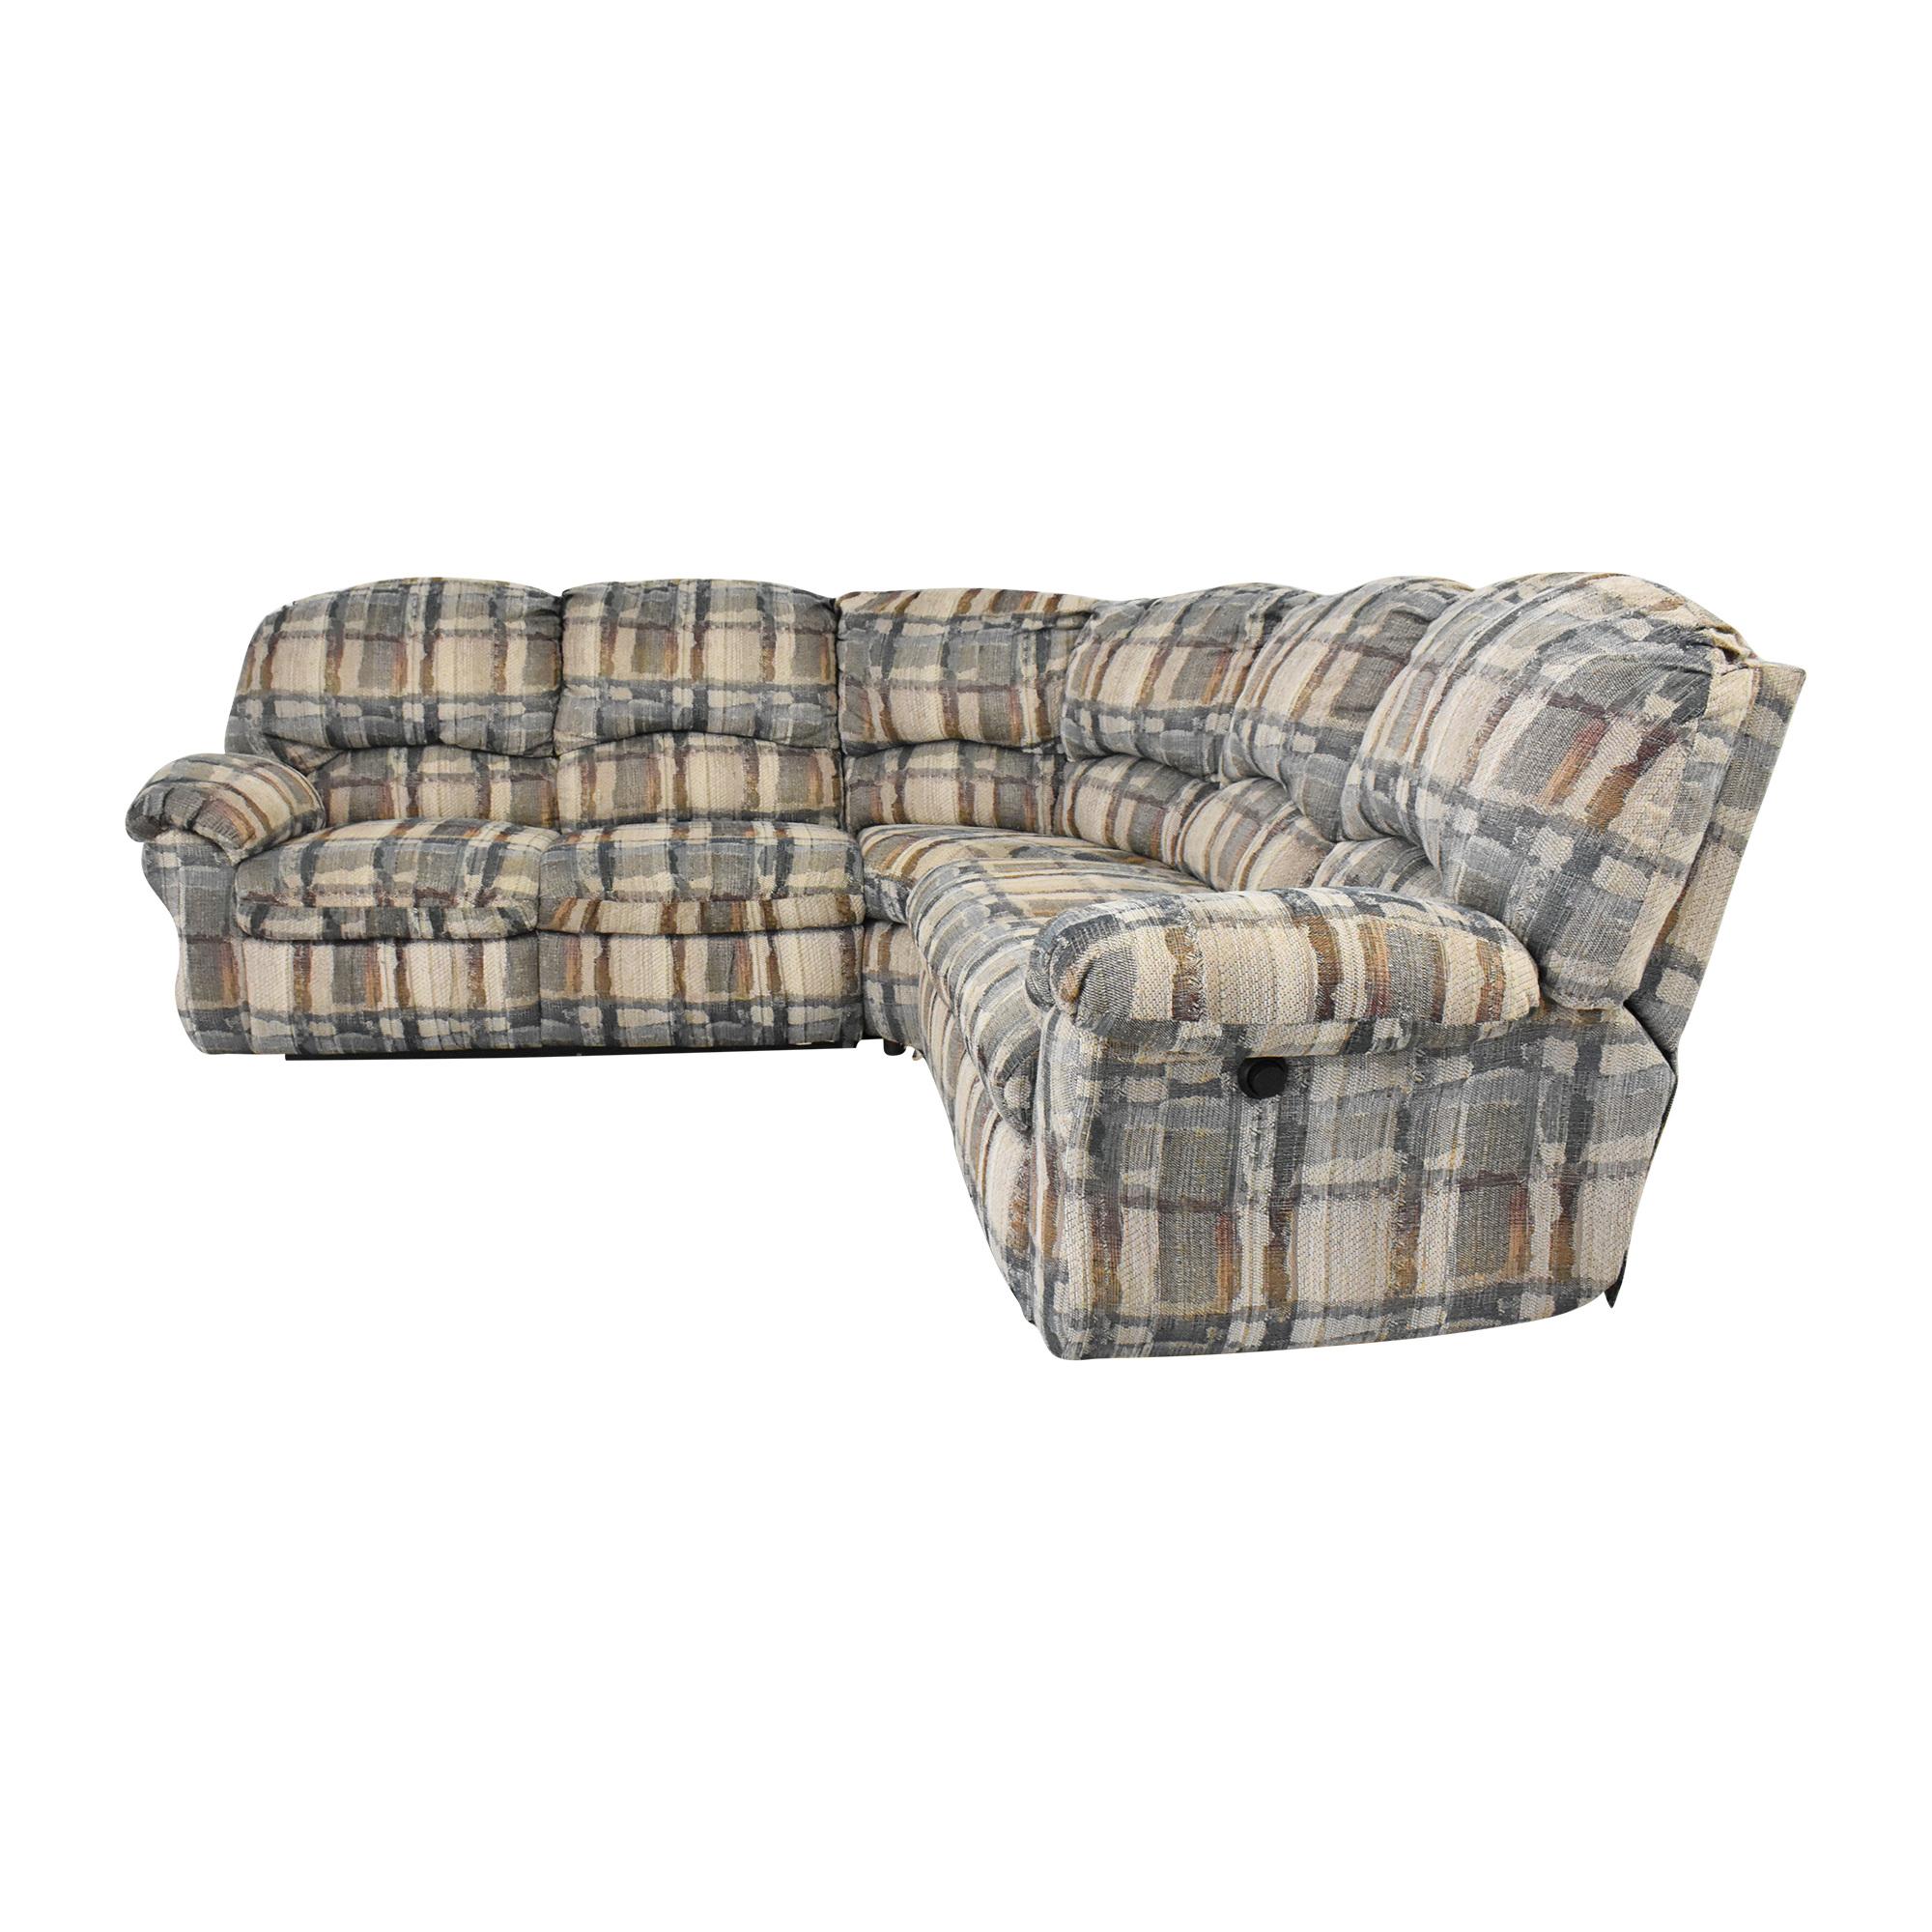 Berkline Berkline Crescent Sectional Sofa with Recliners price